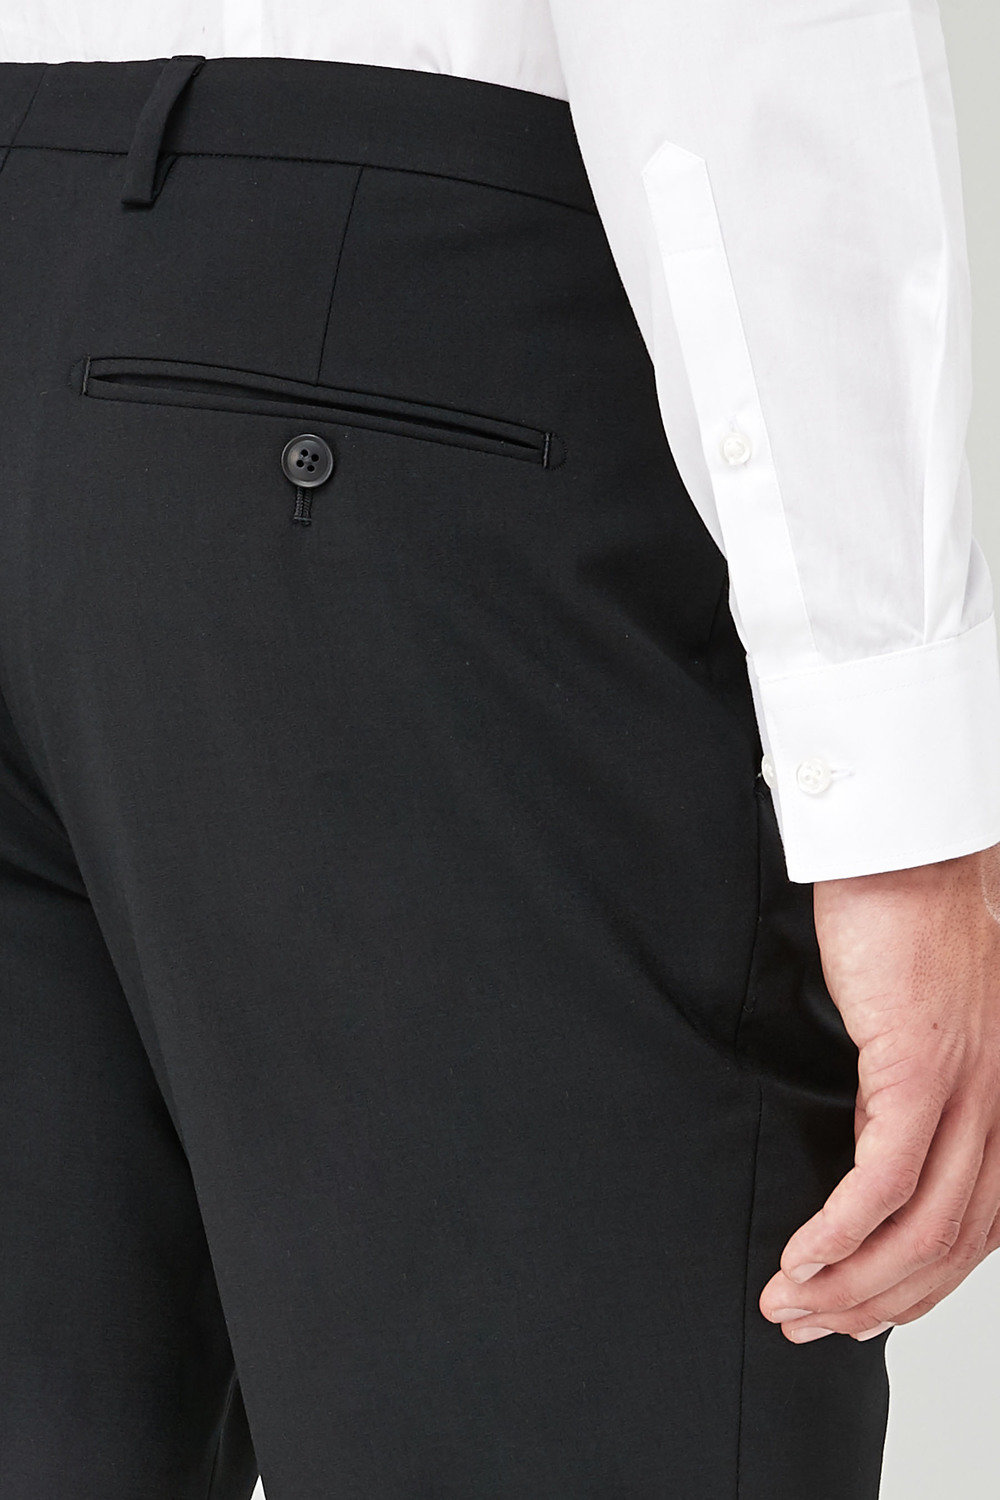 Next Wool Blend Tuxedo Suit  Trousers - Tailored Fit Online  400391eab